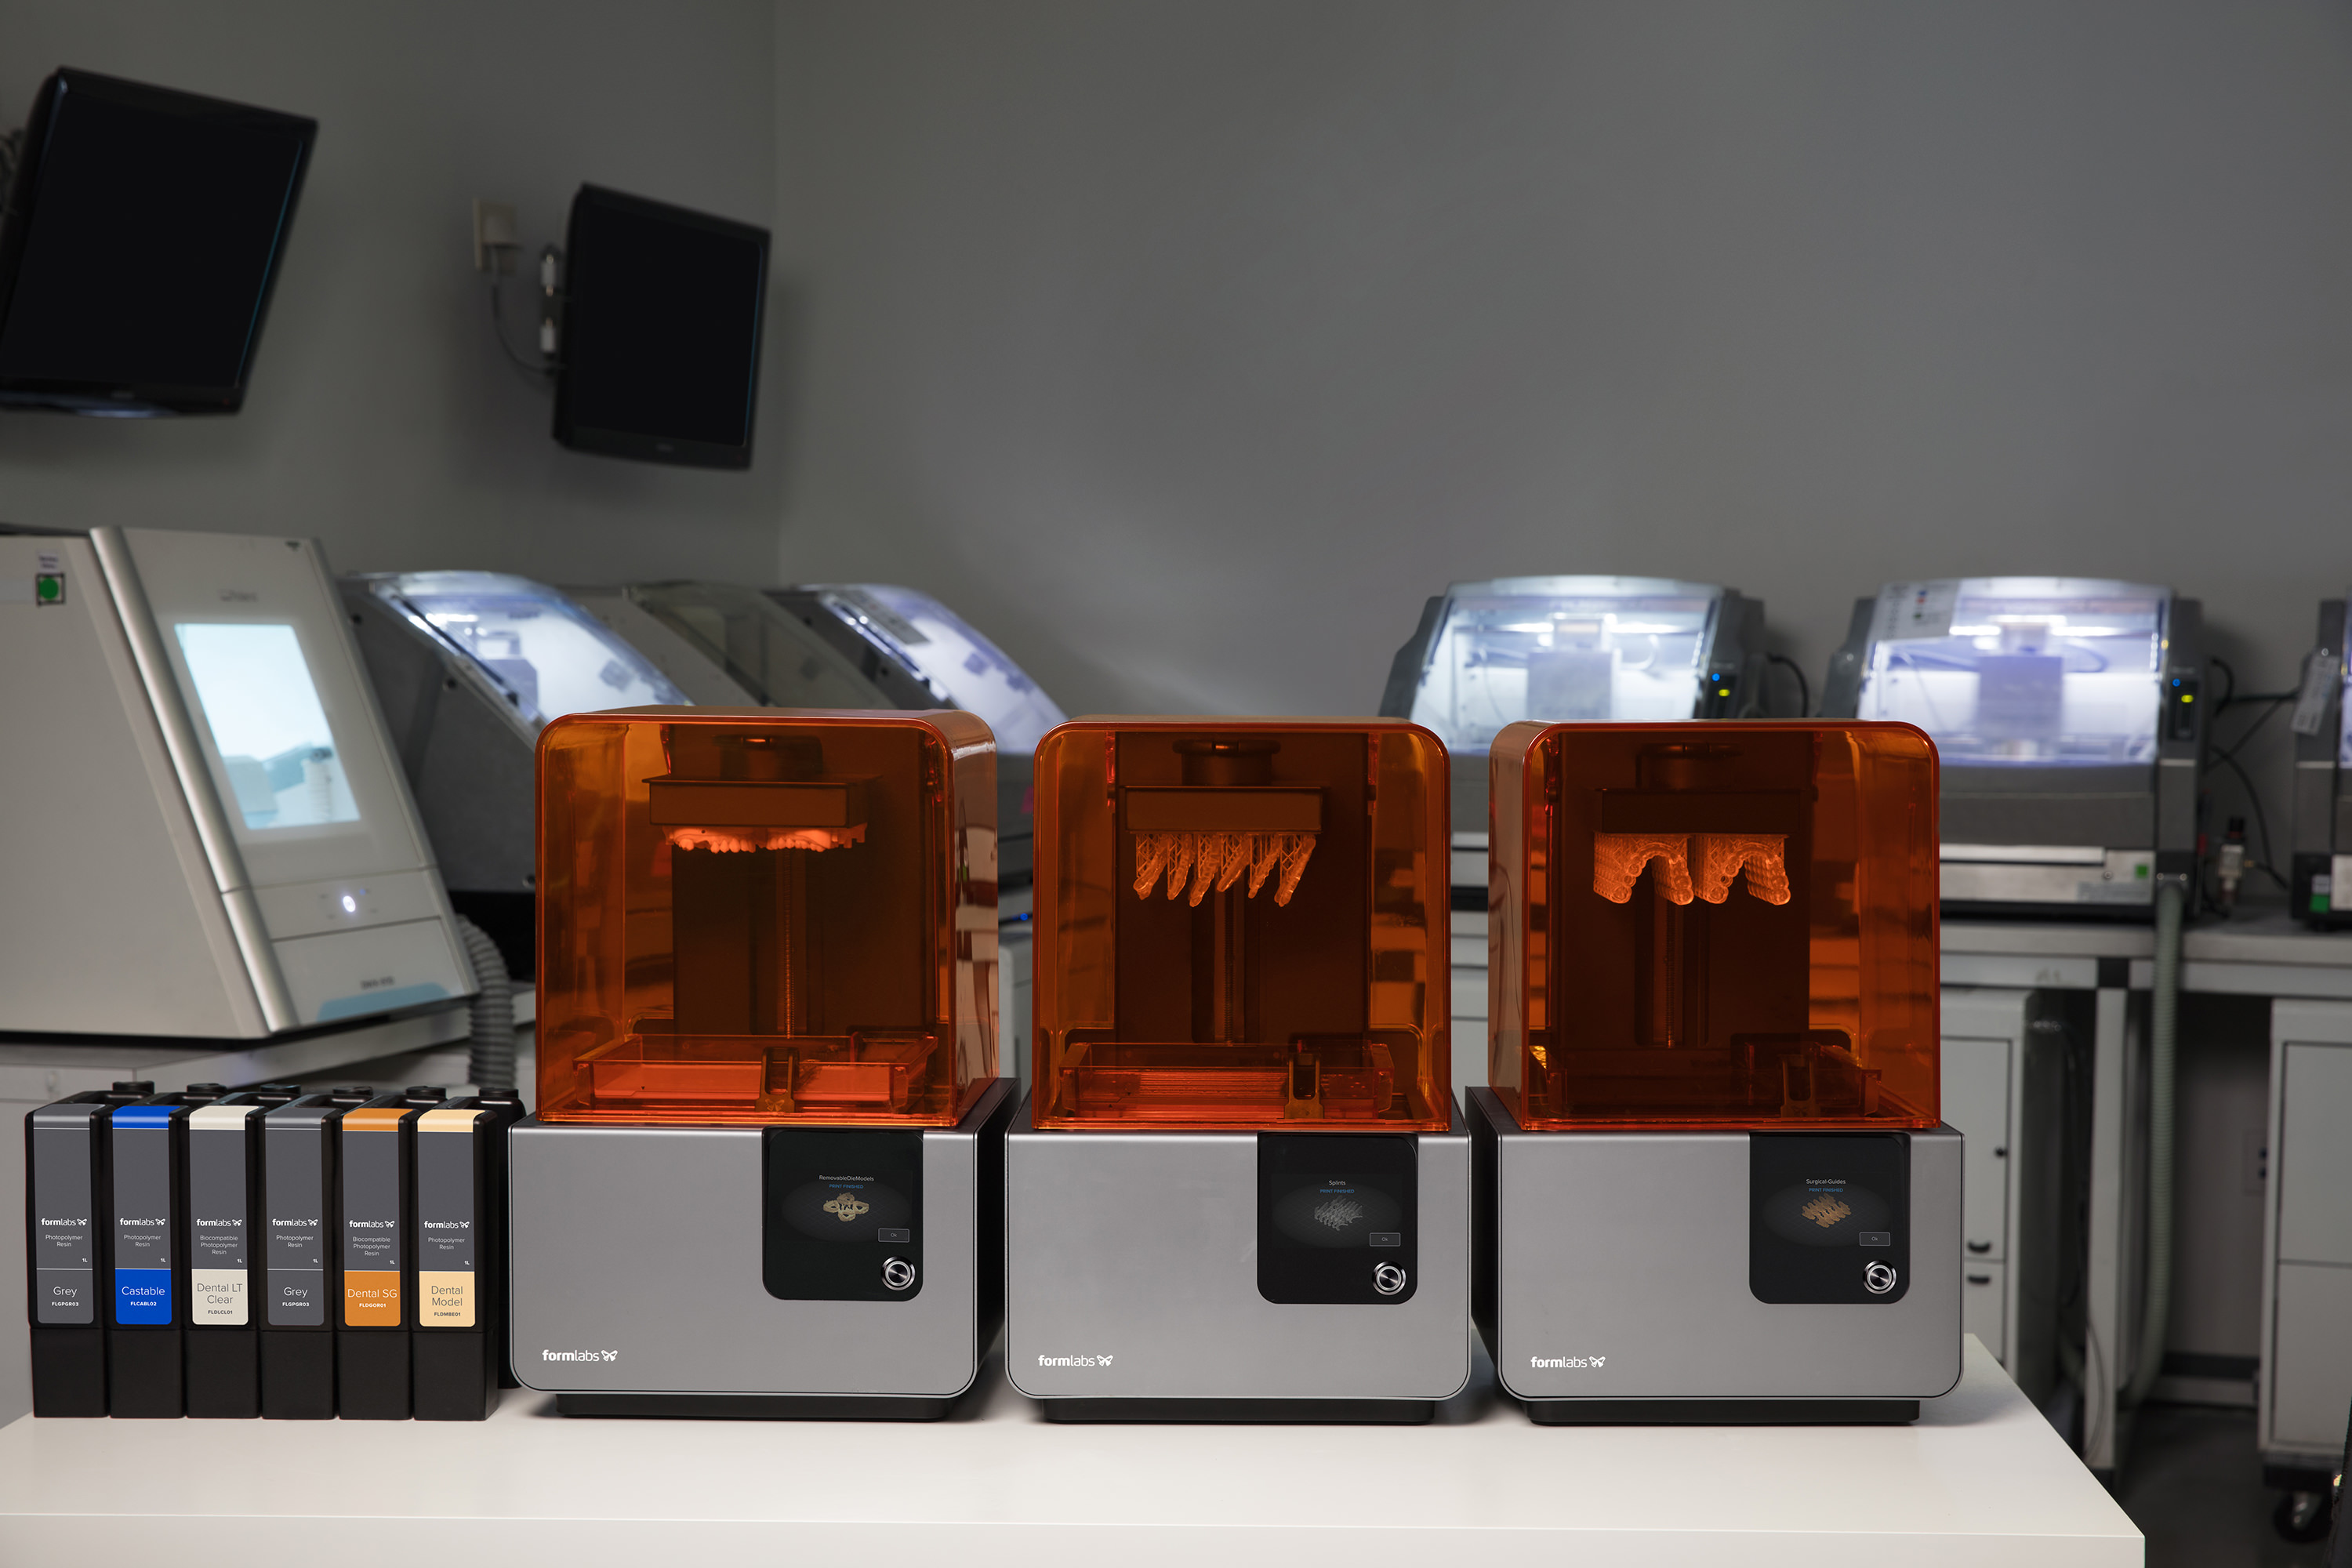 Multi-machine print cells allow 3D printing for multiple different applications in parallel, balancing production needs and lowering risk through redundancy.